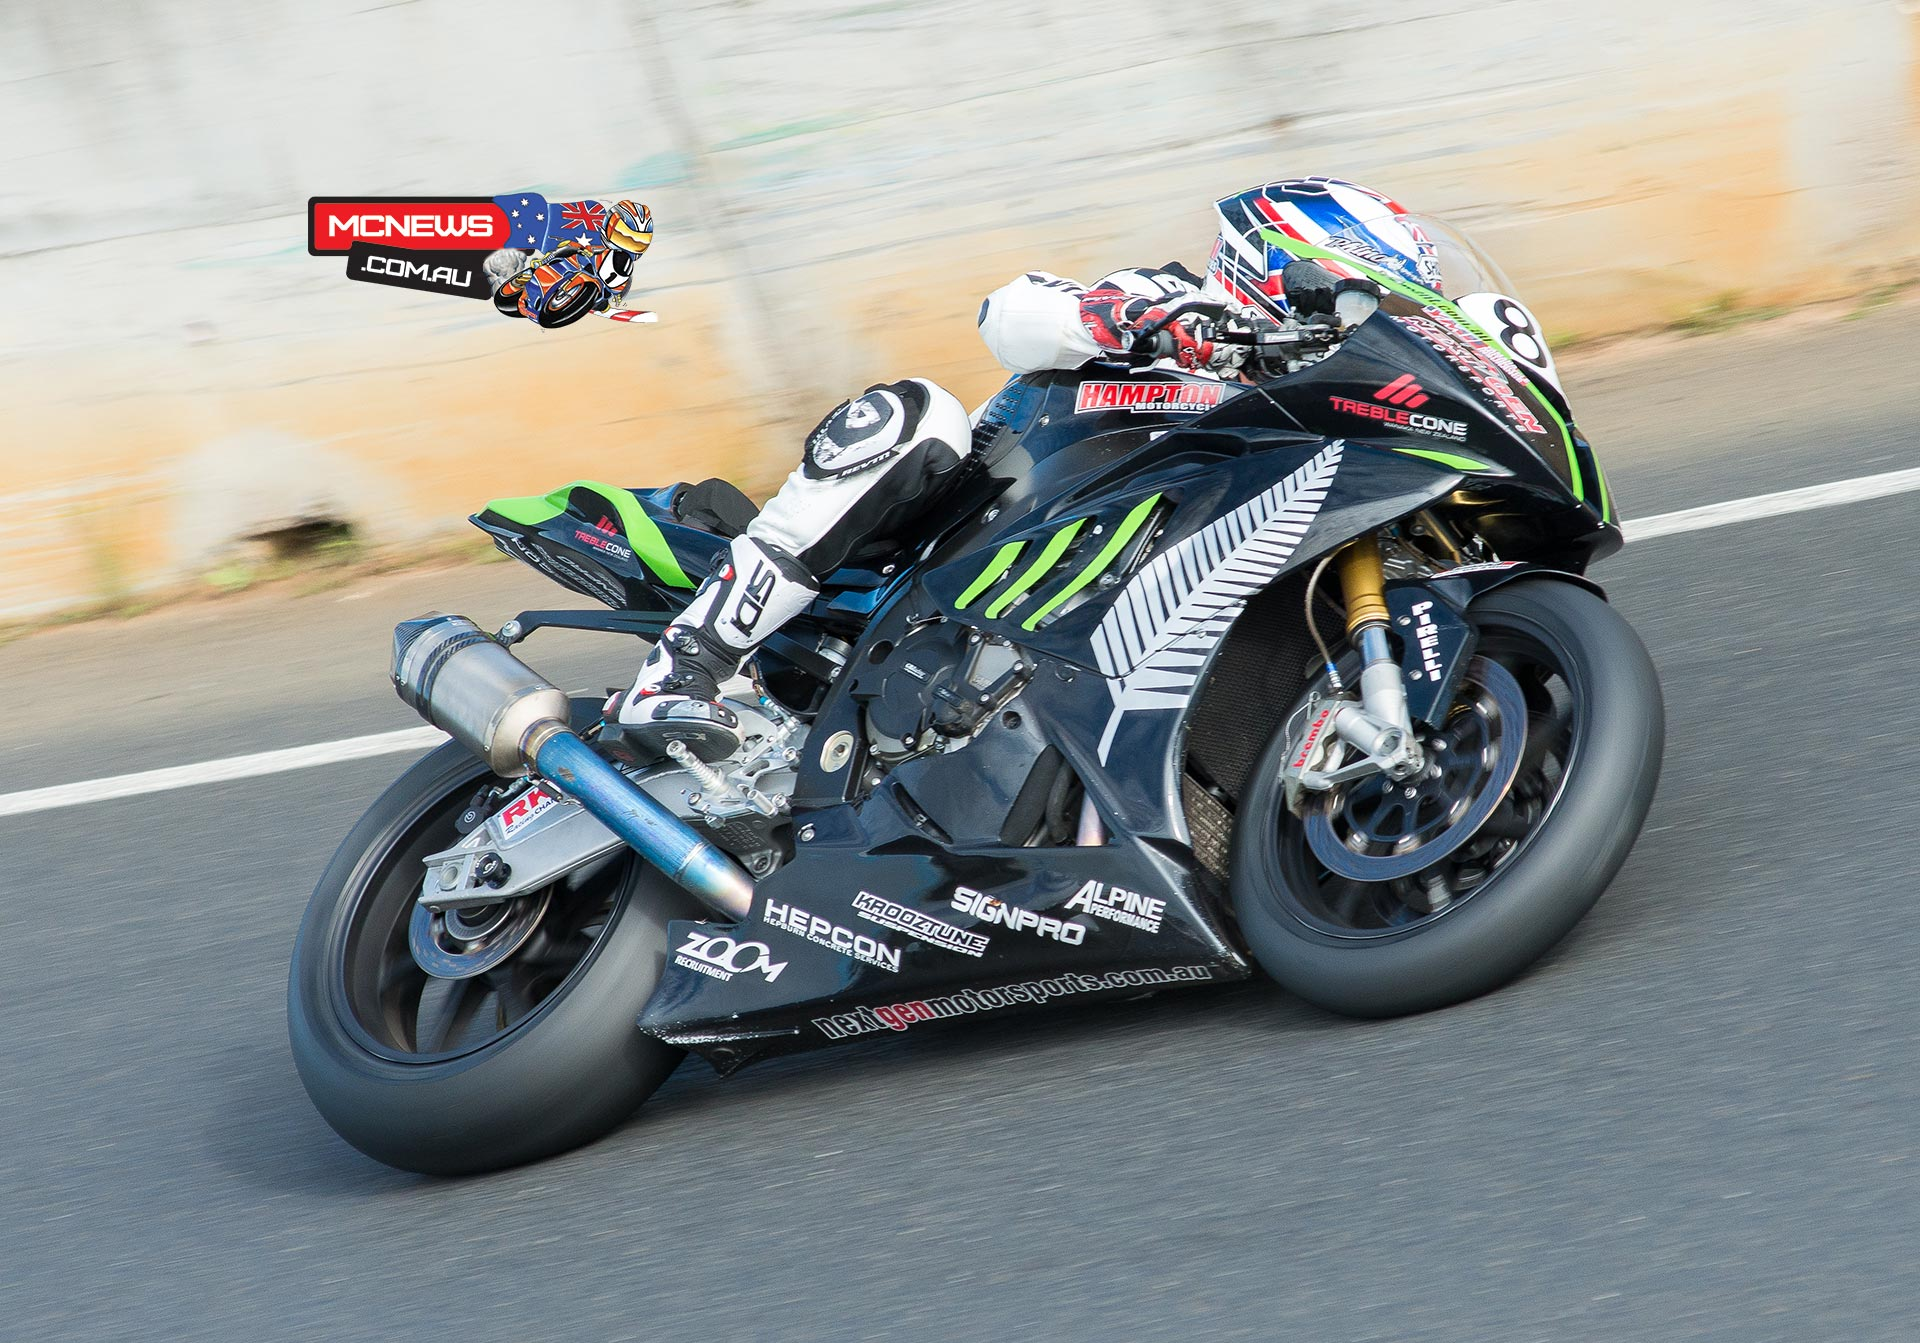 Ryan Hampton on the NextGen BMW